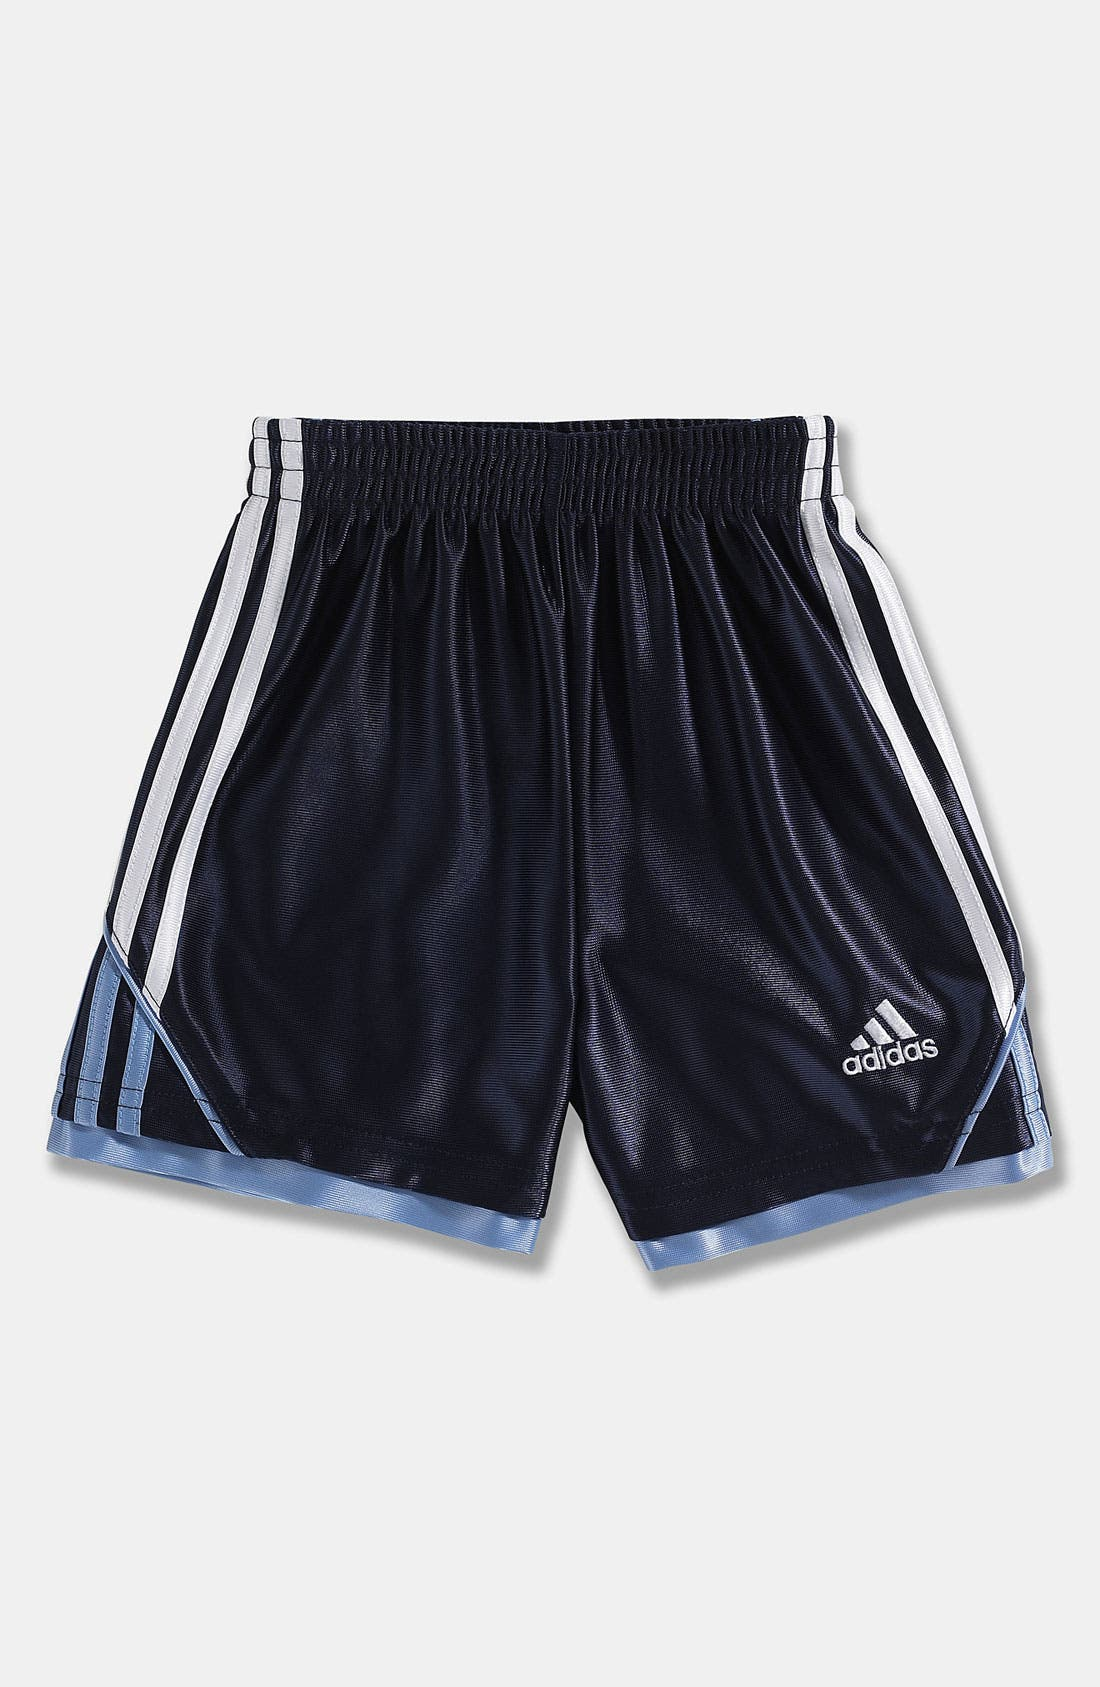 Main Image - adidas 'Prime Dazzle' Shorts (Toddler)